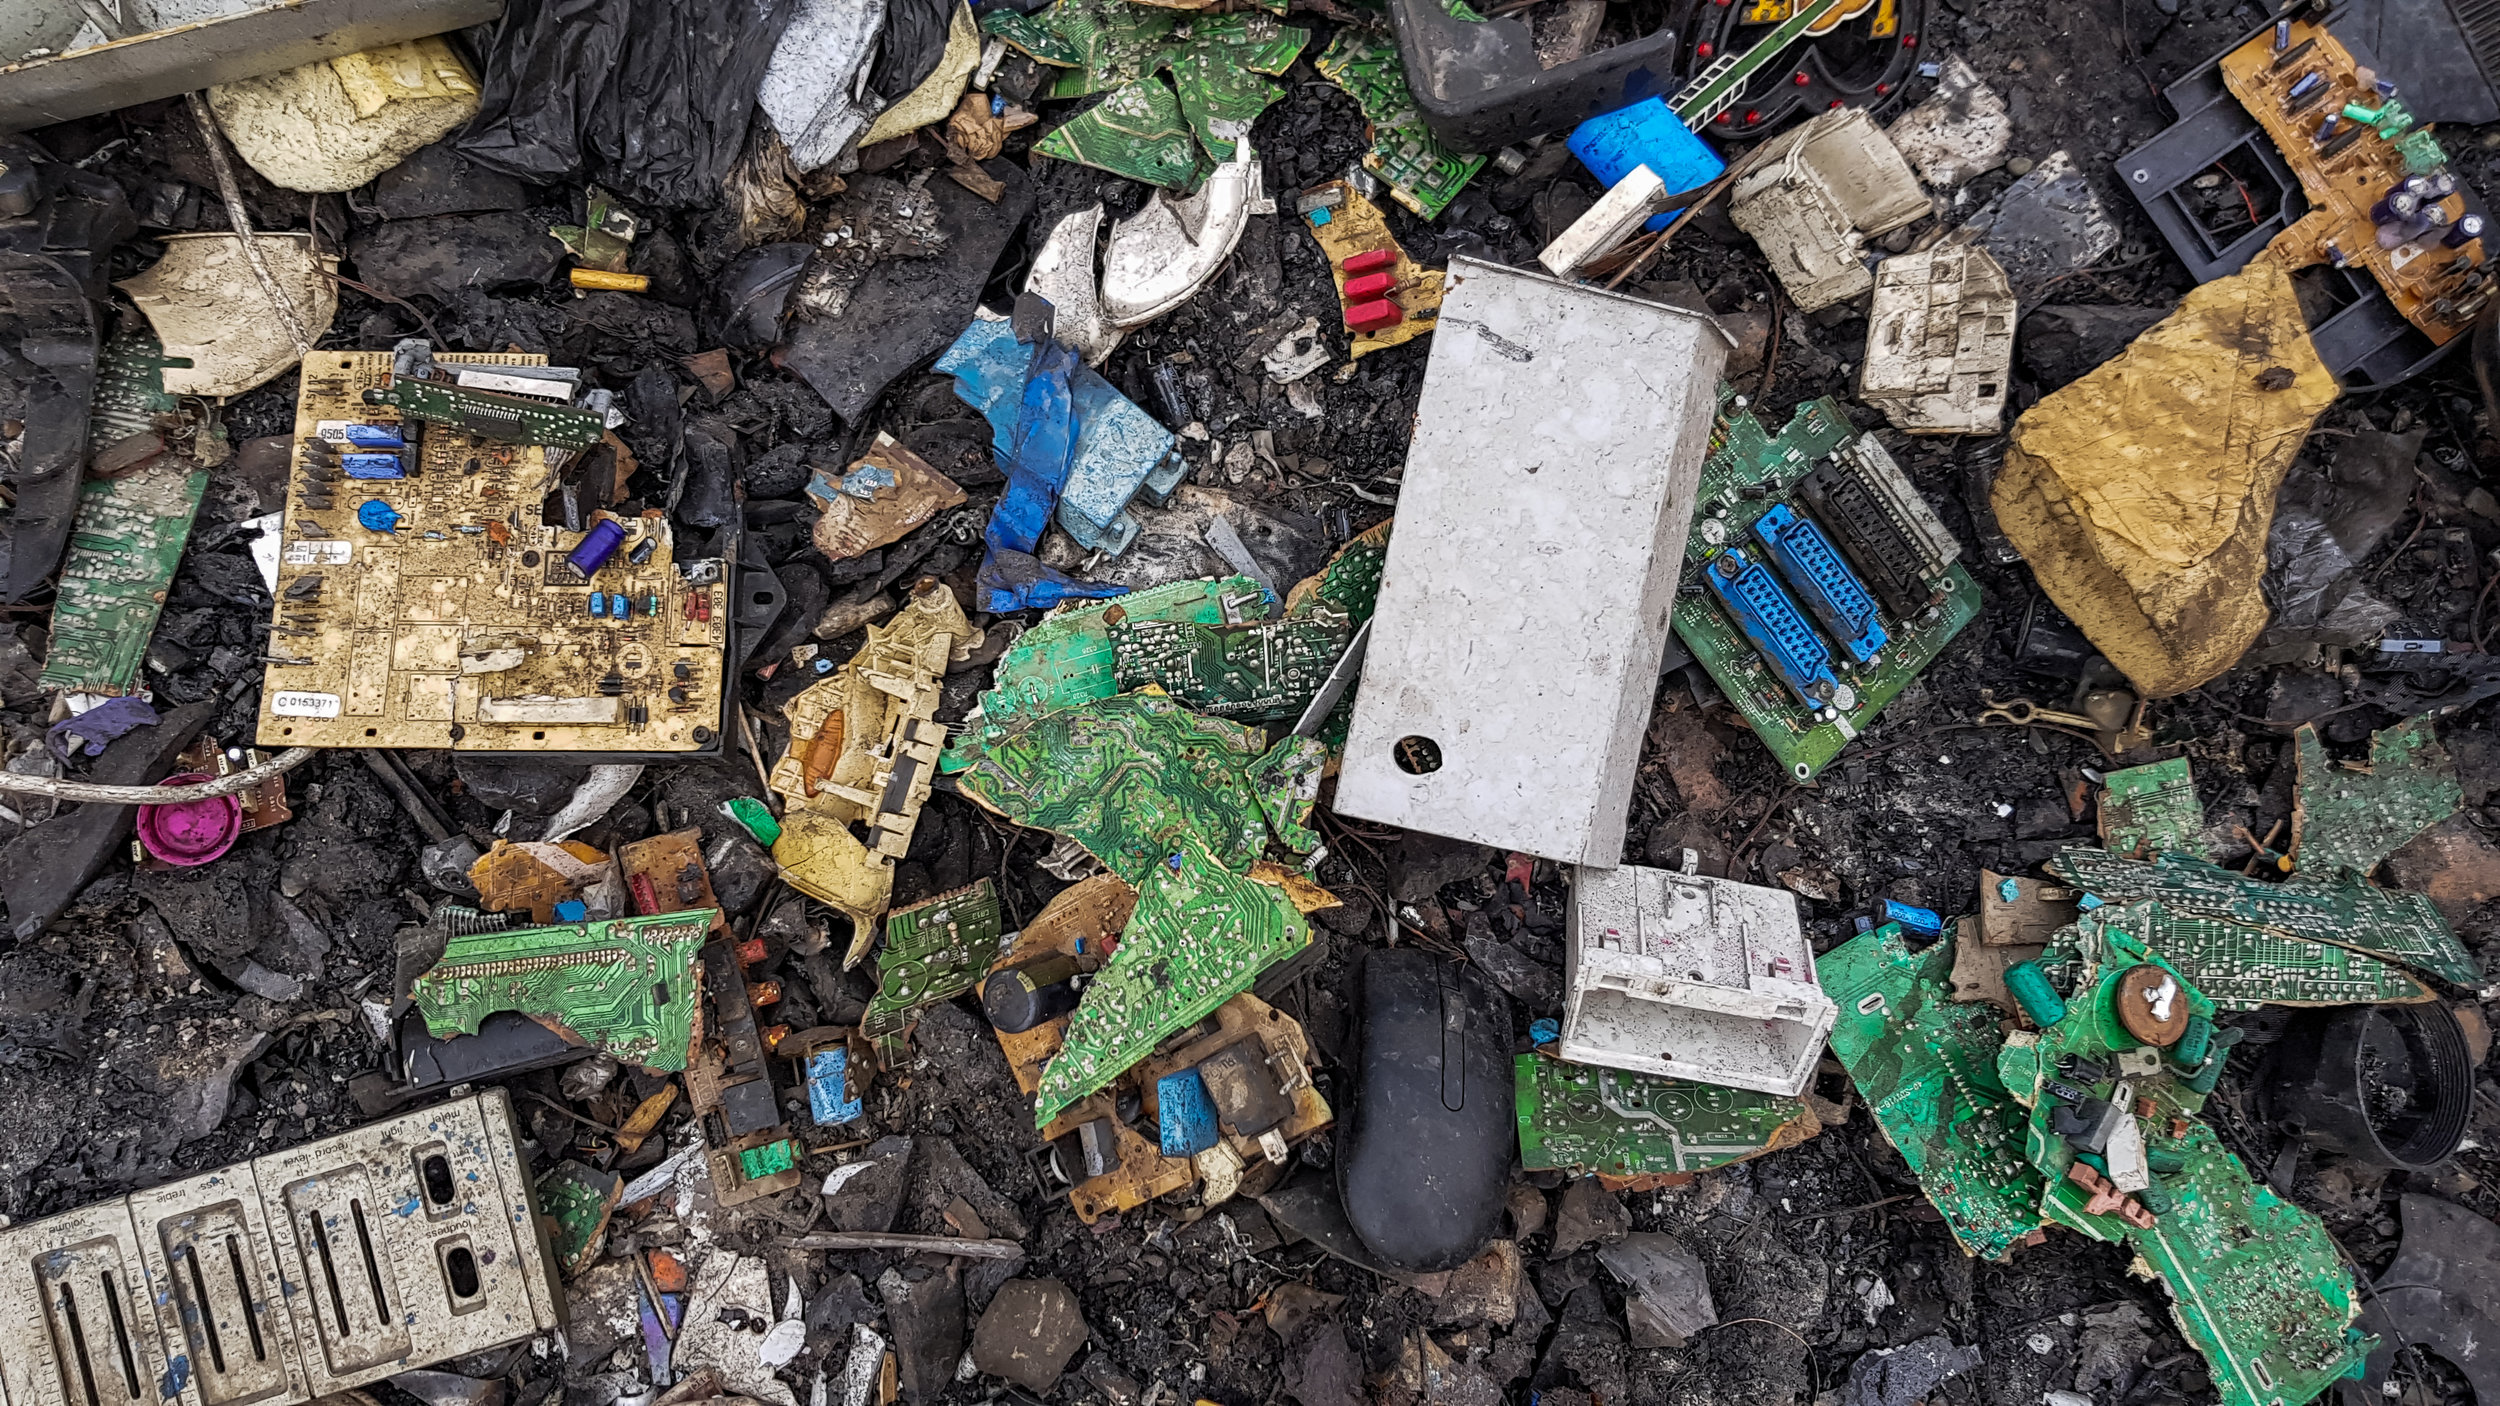 Electronic_waste_at_Agbogbloshie,_Ghana.jpg